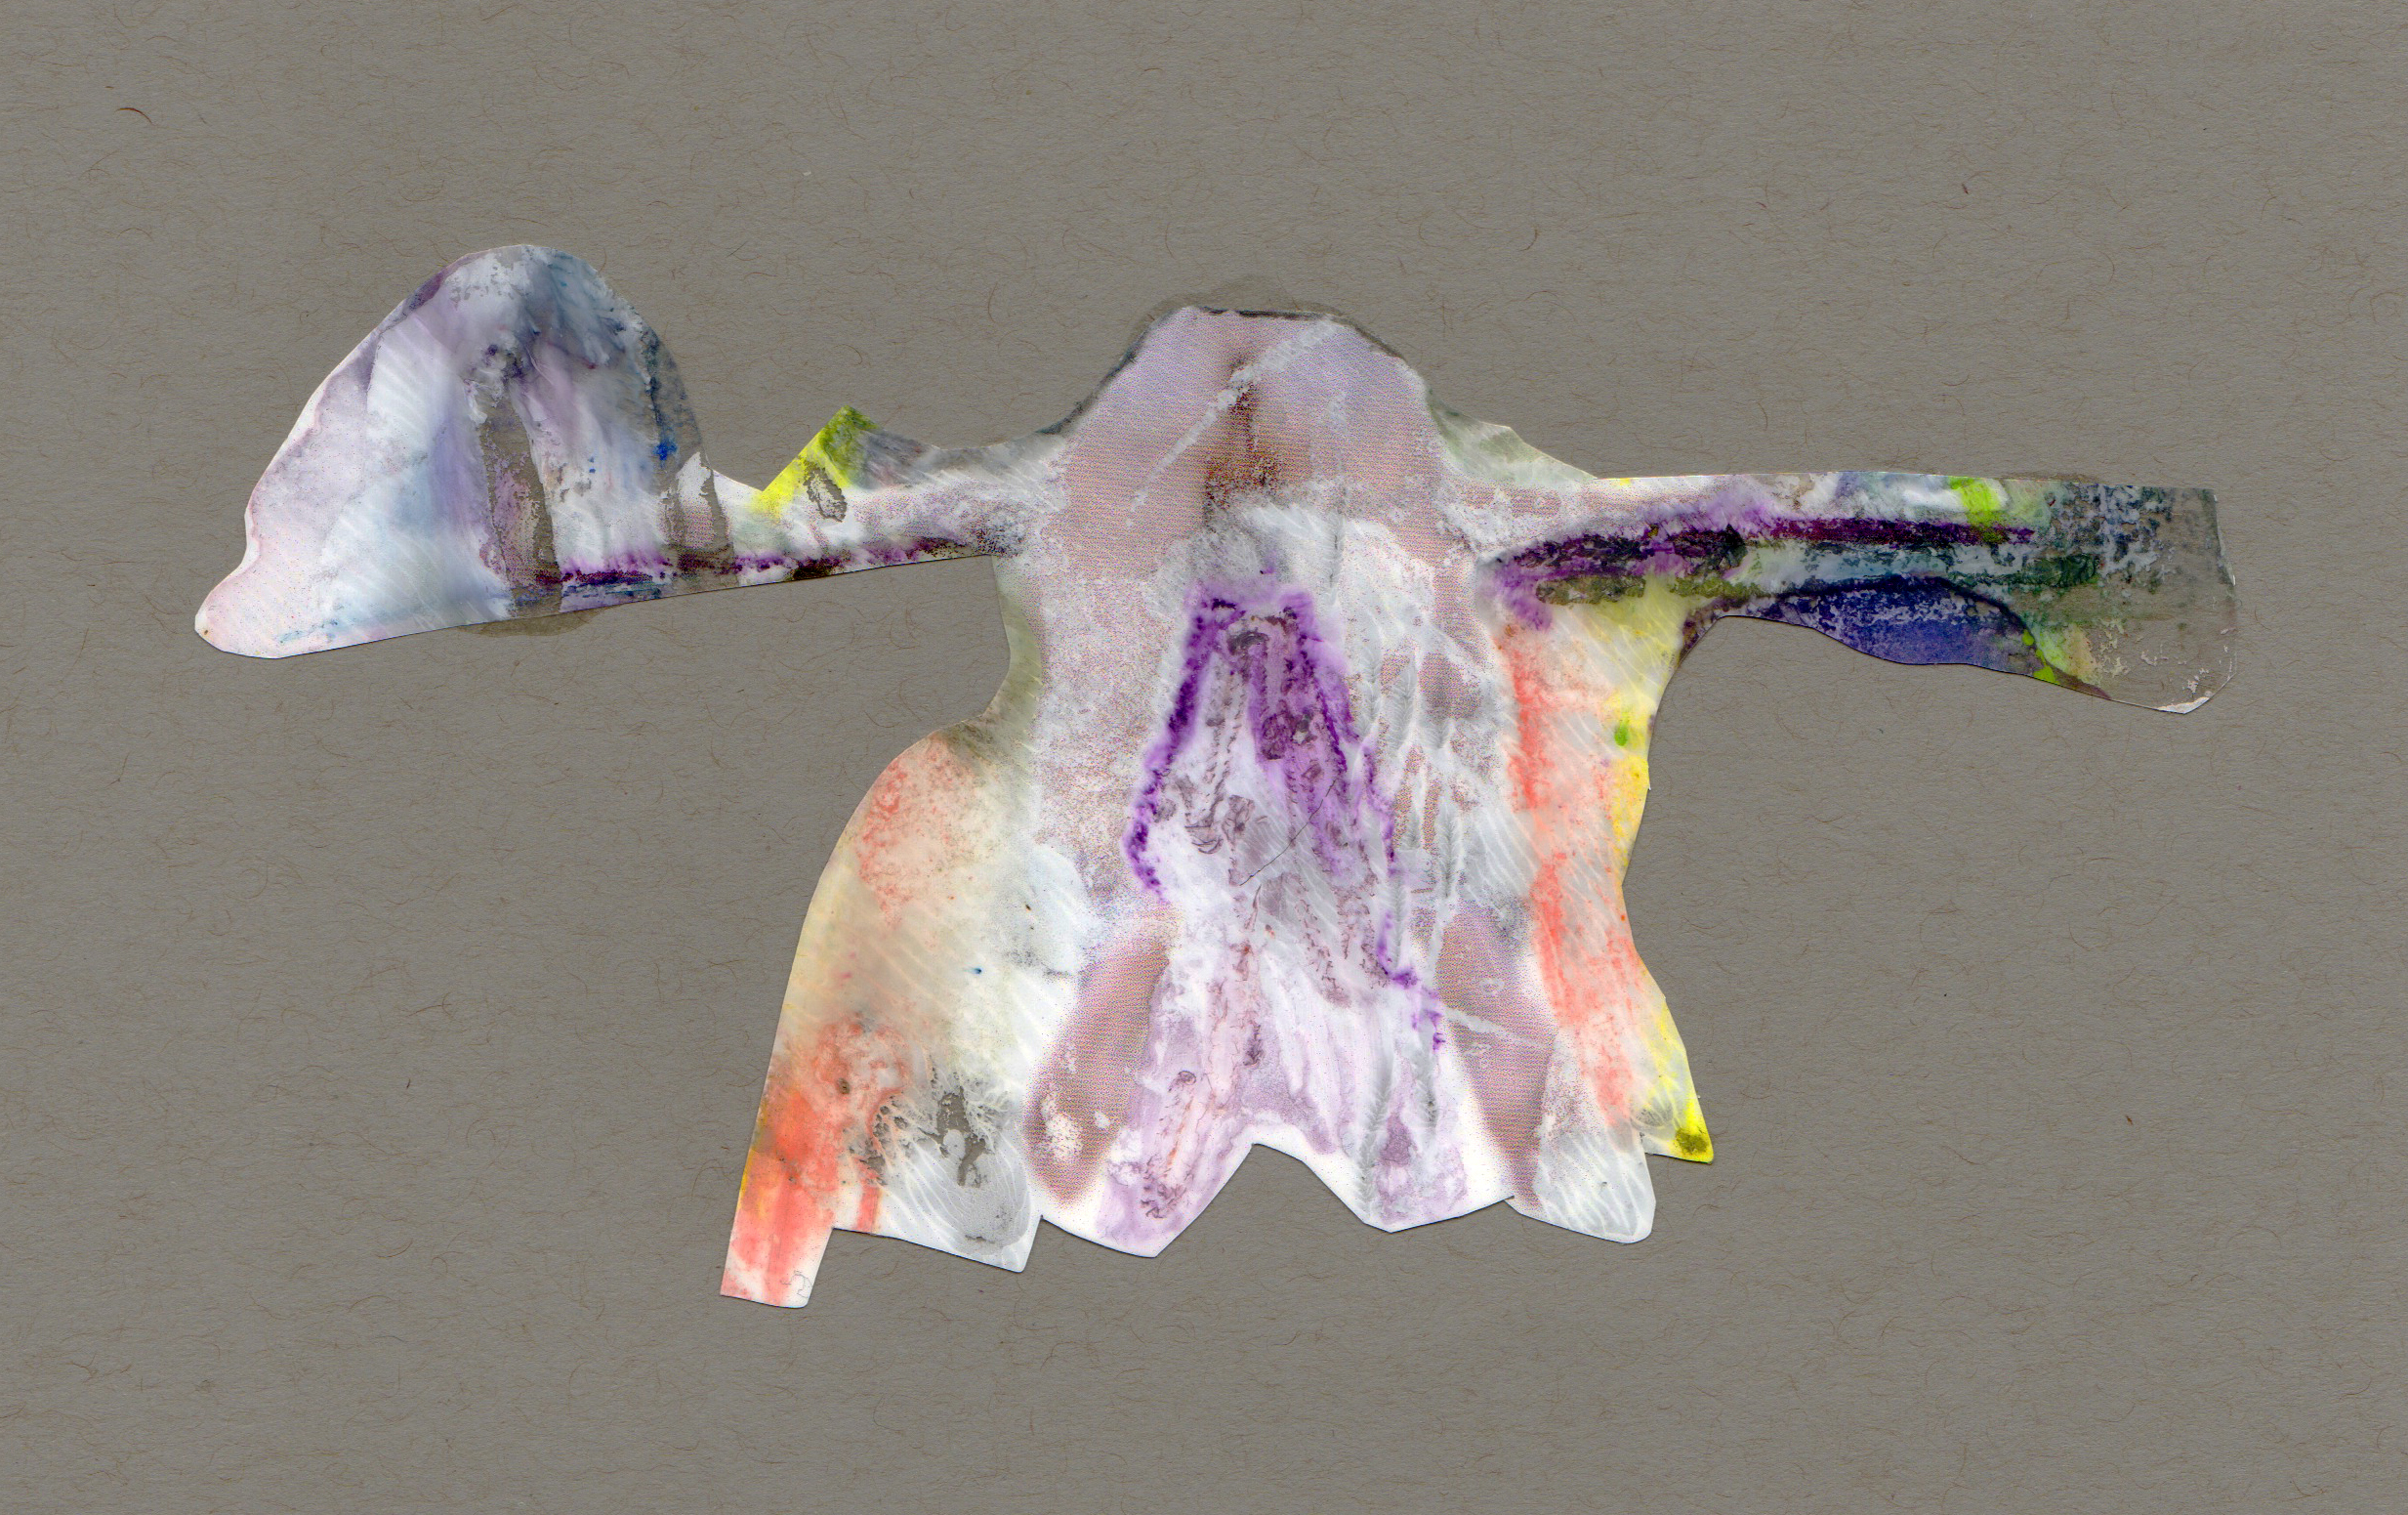 Pipe Dream, 2014, paint transparency archival ink and paper, 8.5x5.5 inches